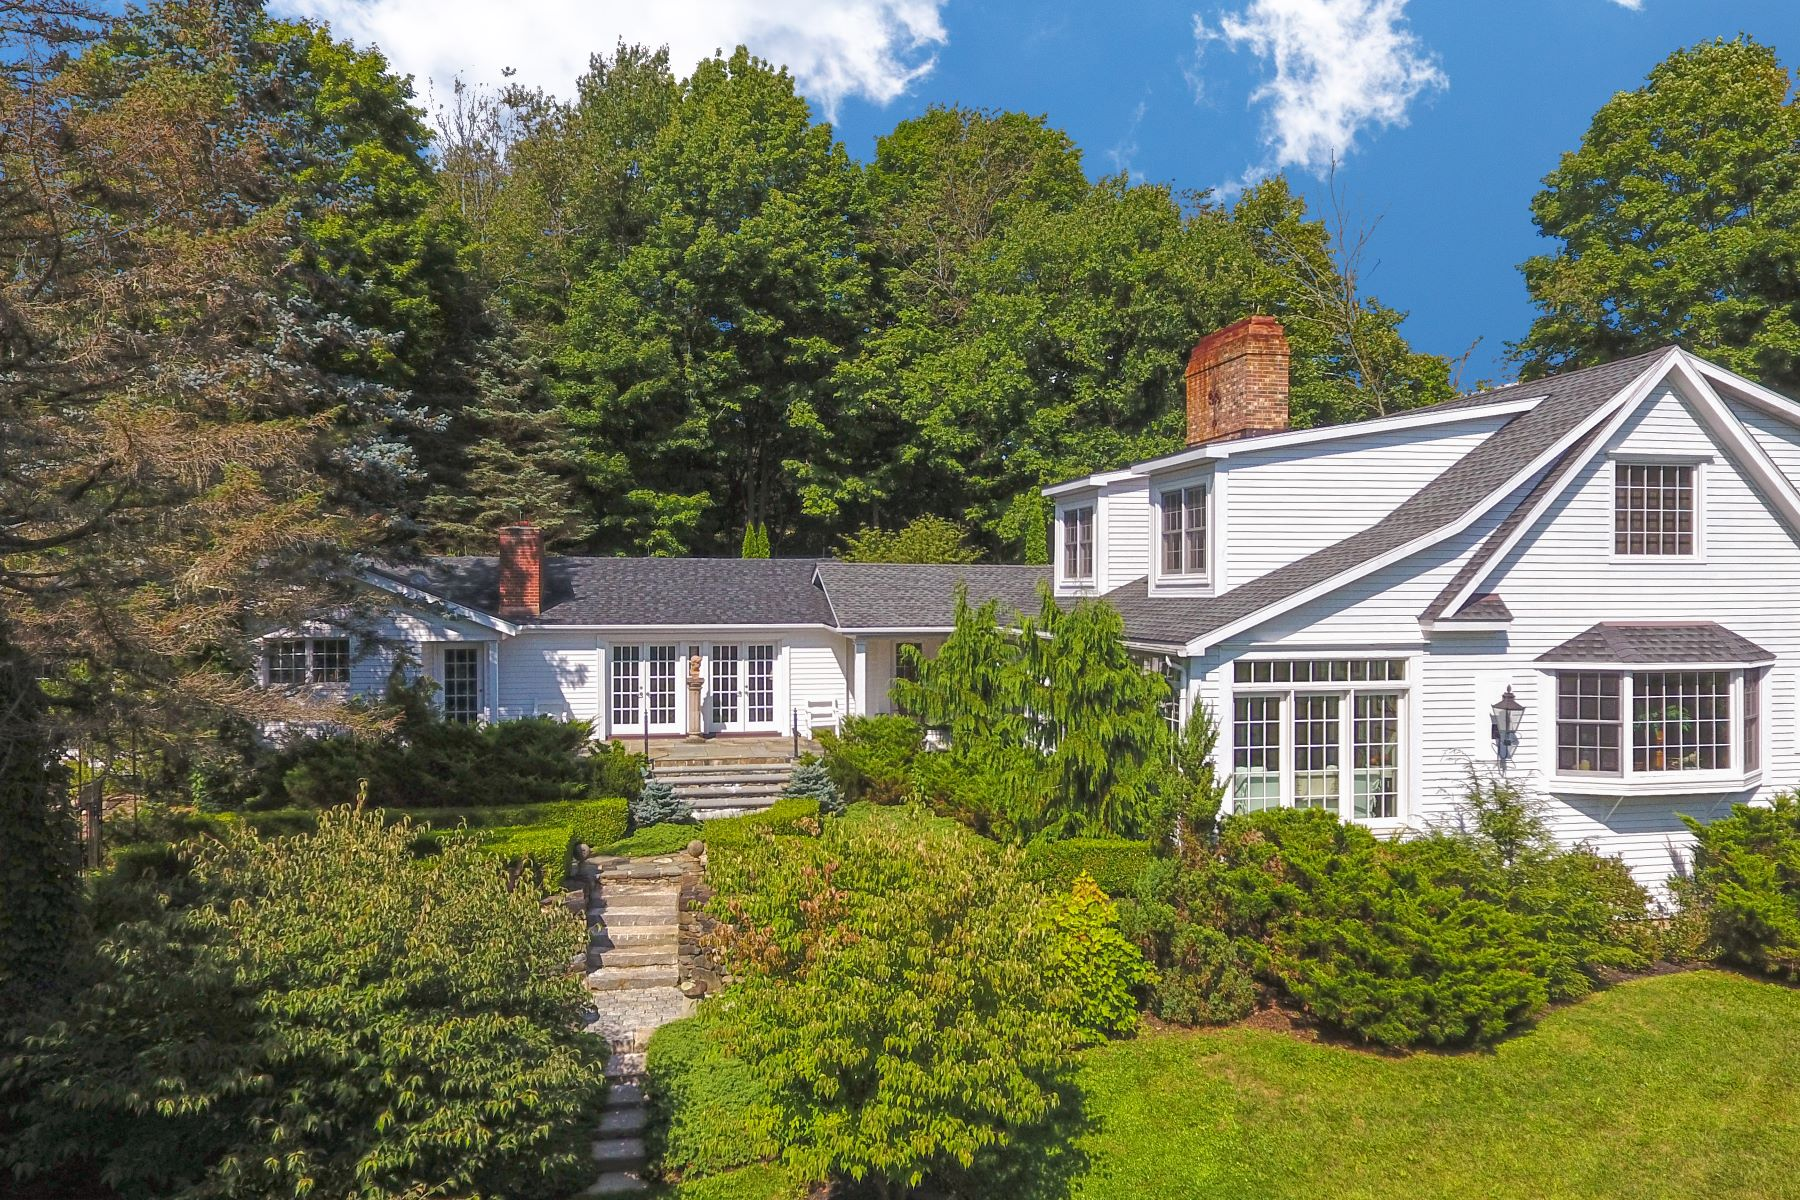 Single Family Homes for Sale at Old Hollywood in Litchfield Hills 27 Cornwall Road Warren, Connecticut 06754 United States